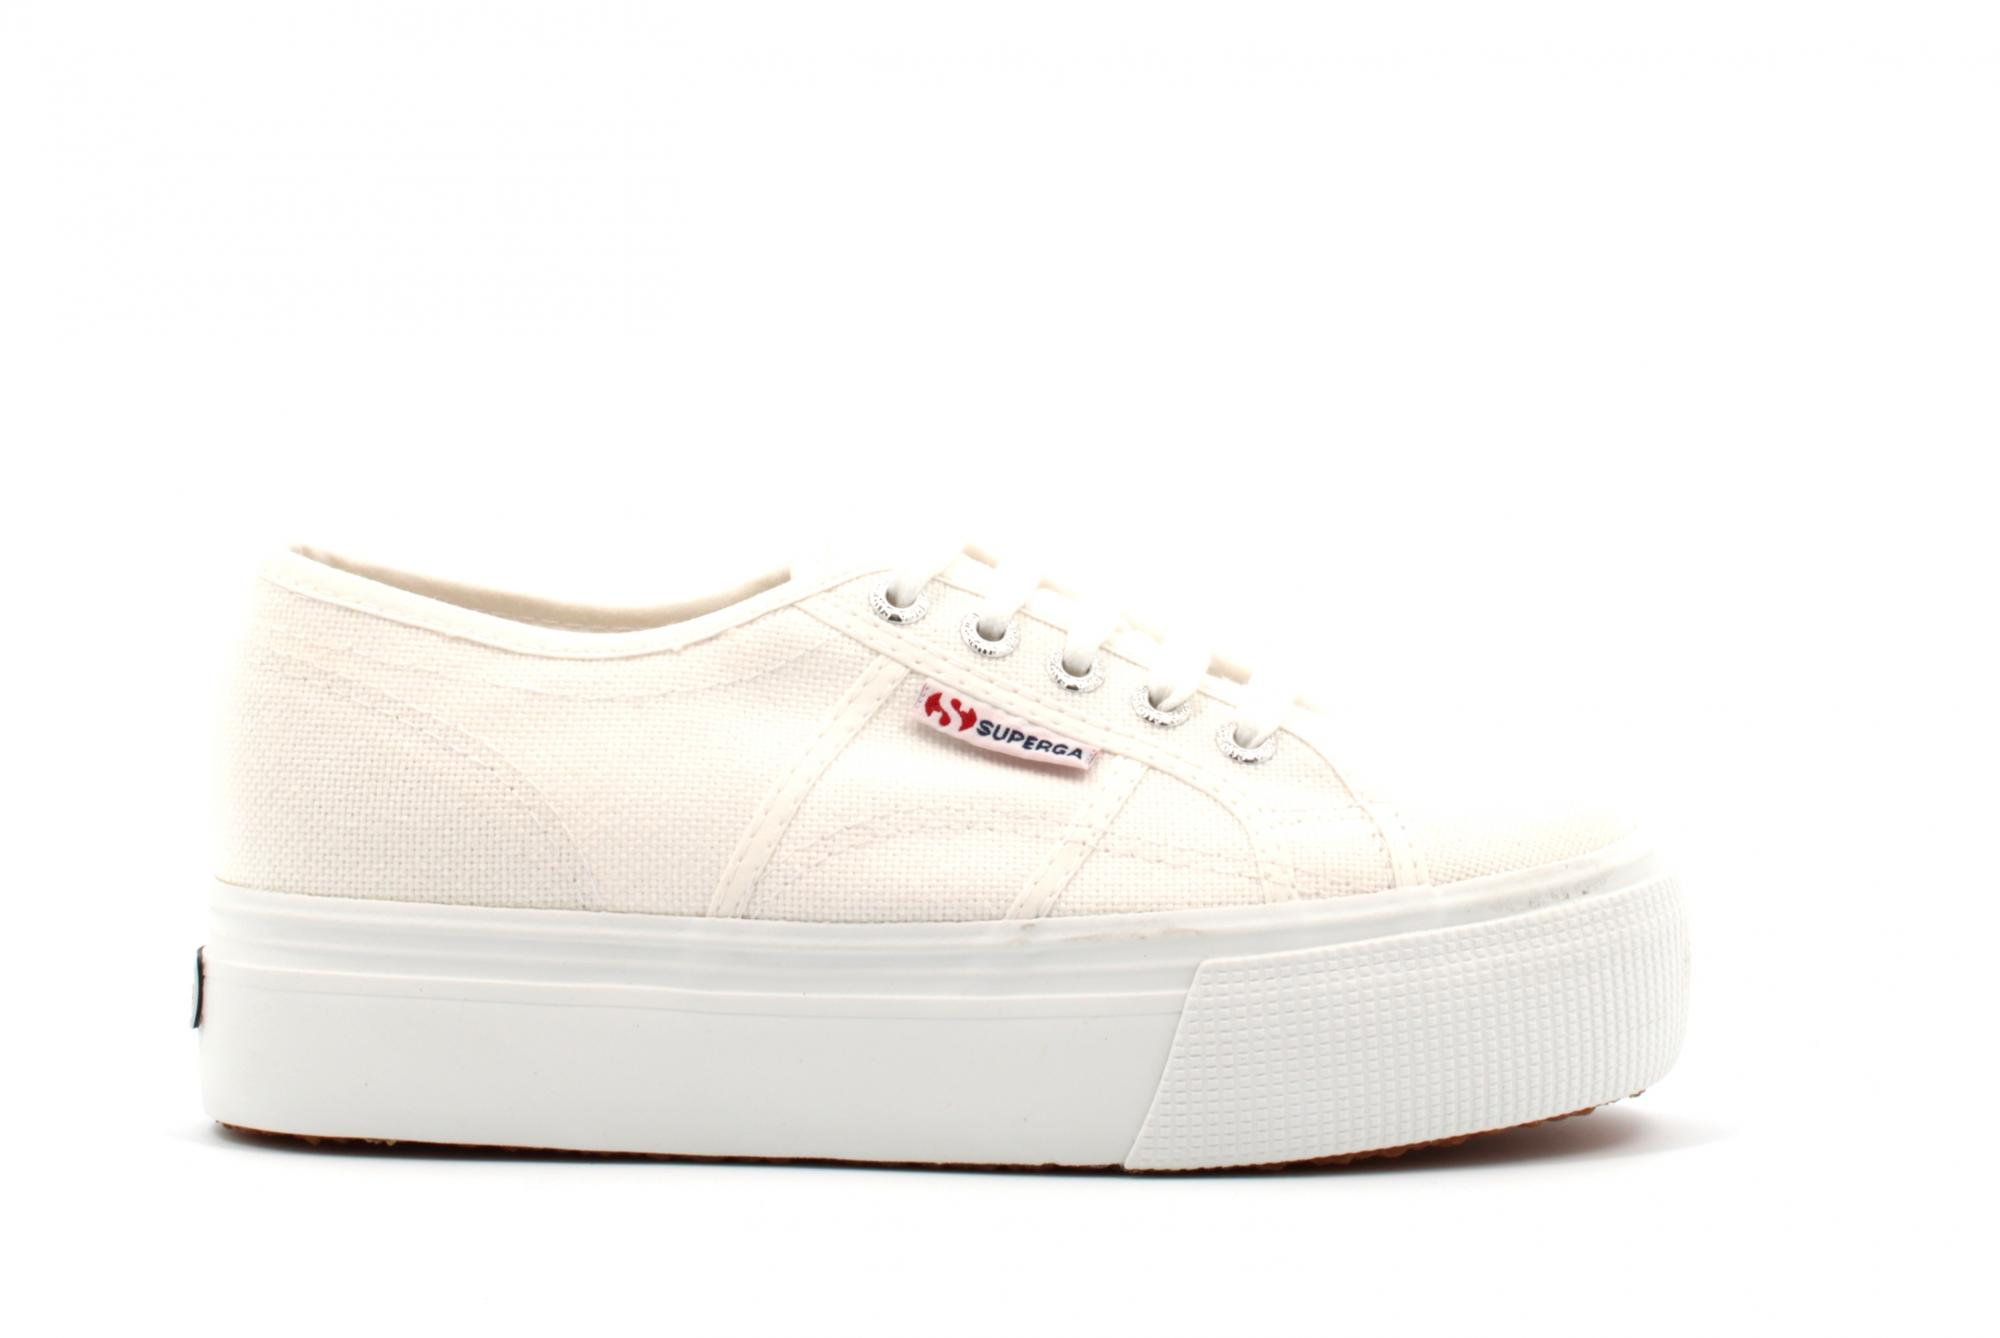 Details about Superga A19u women's shoes sneakers platform S0001L0 901 2790A COTW UP AND DOWN